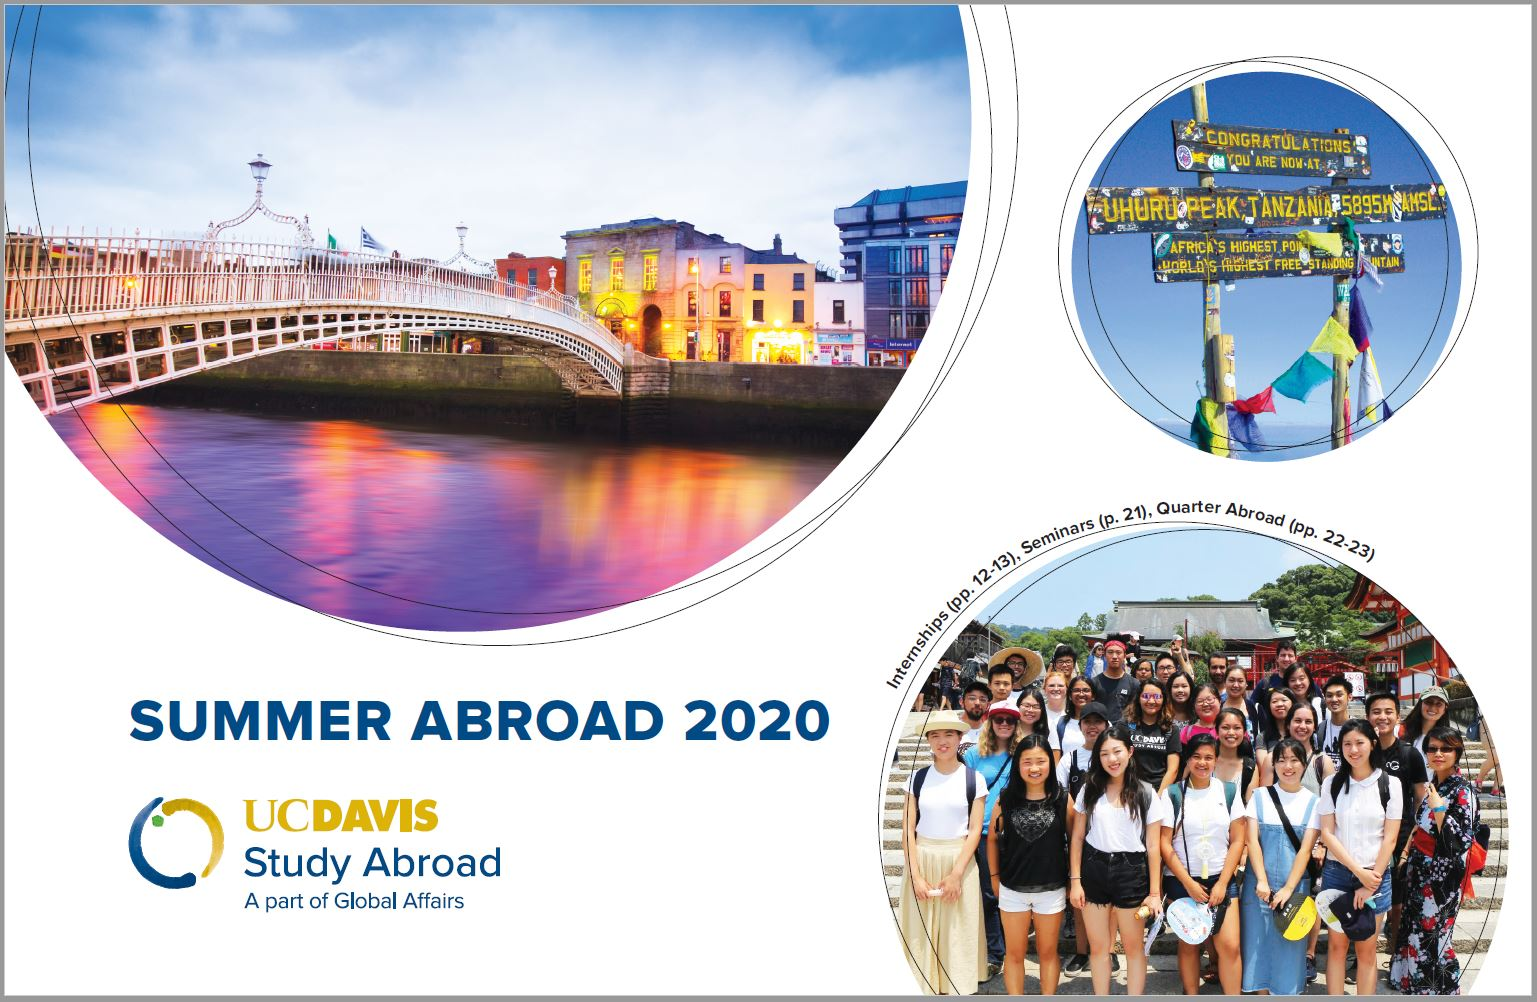 Image - Summer Abroad Brochure